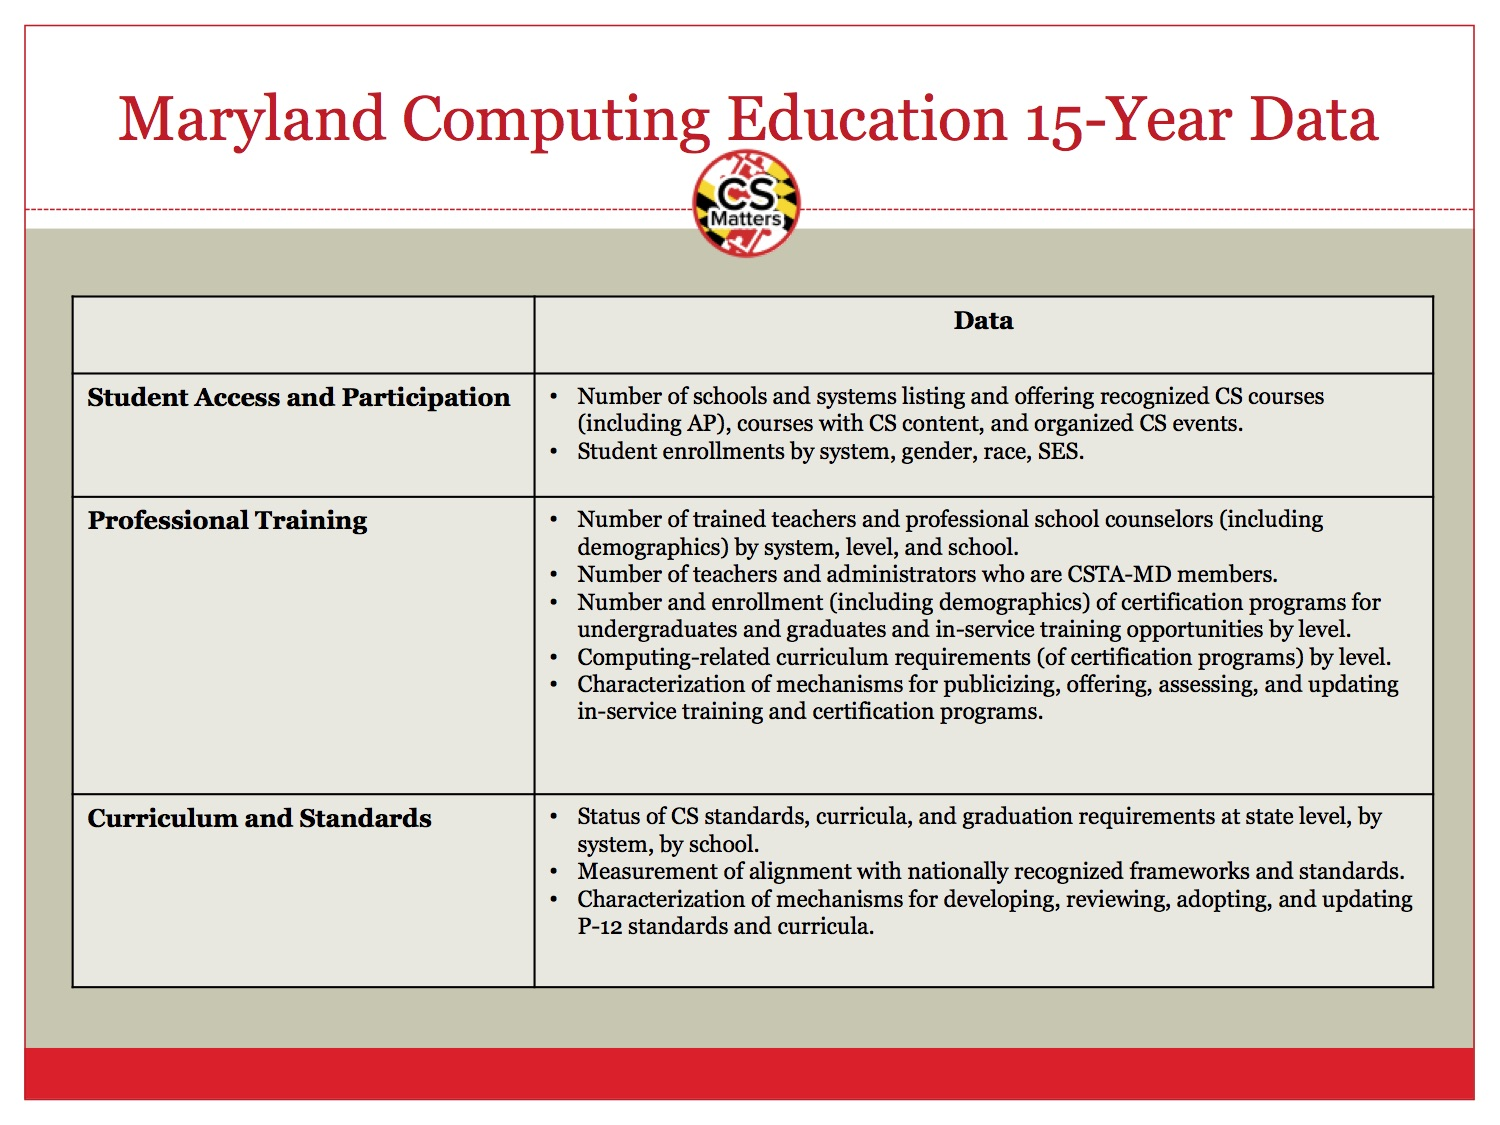 Goals for expanding computing education pathways ecep ce21 goals for expanding computing education pathways ecep 1betcityfo Images